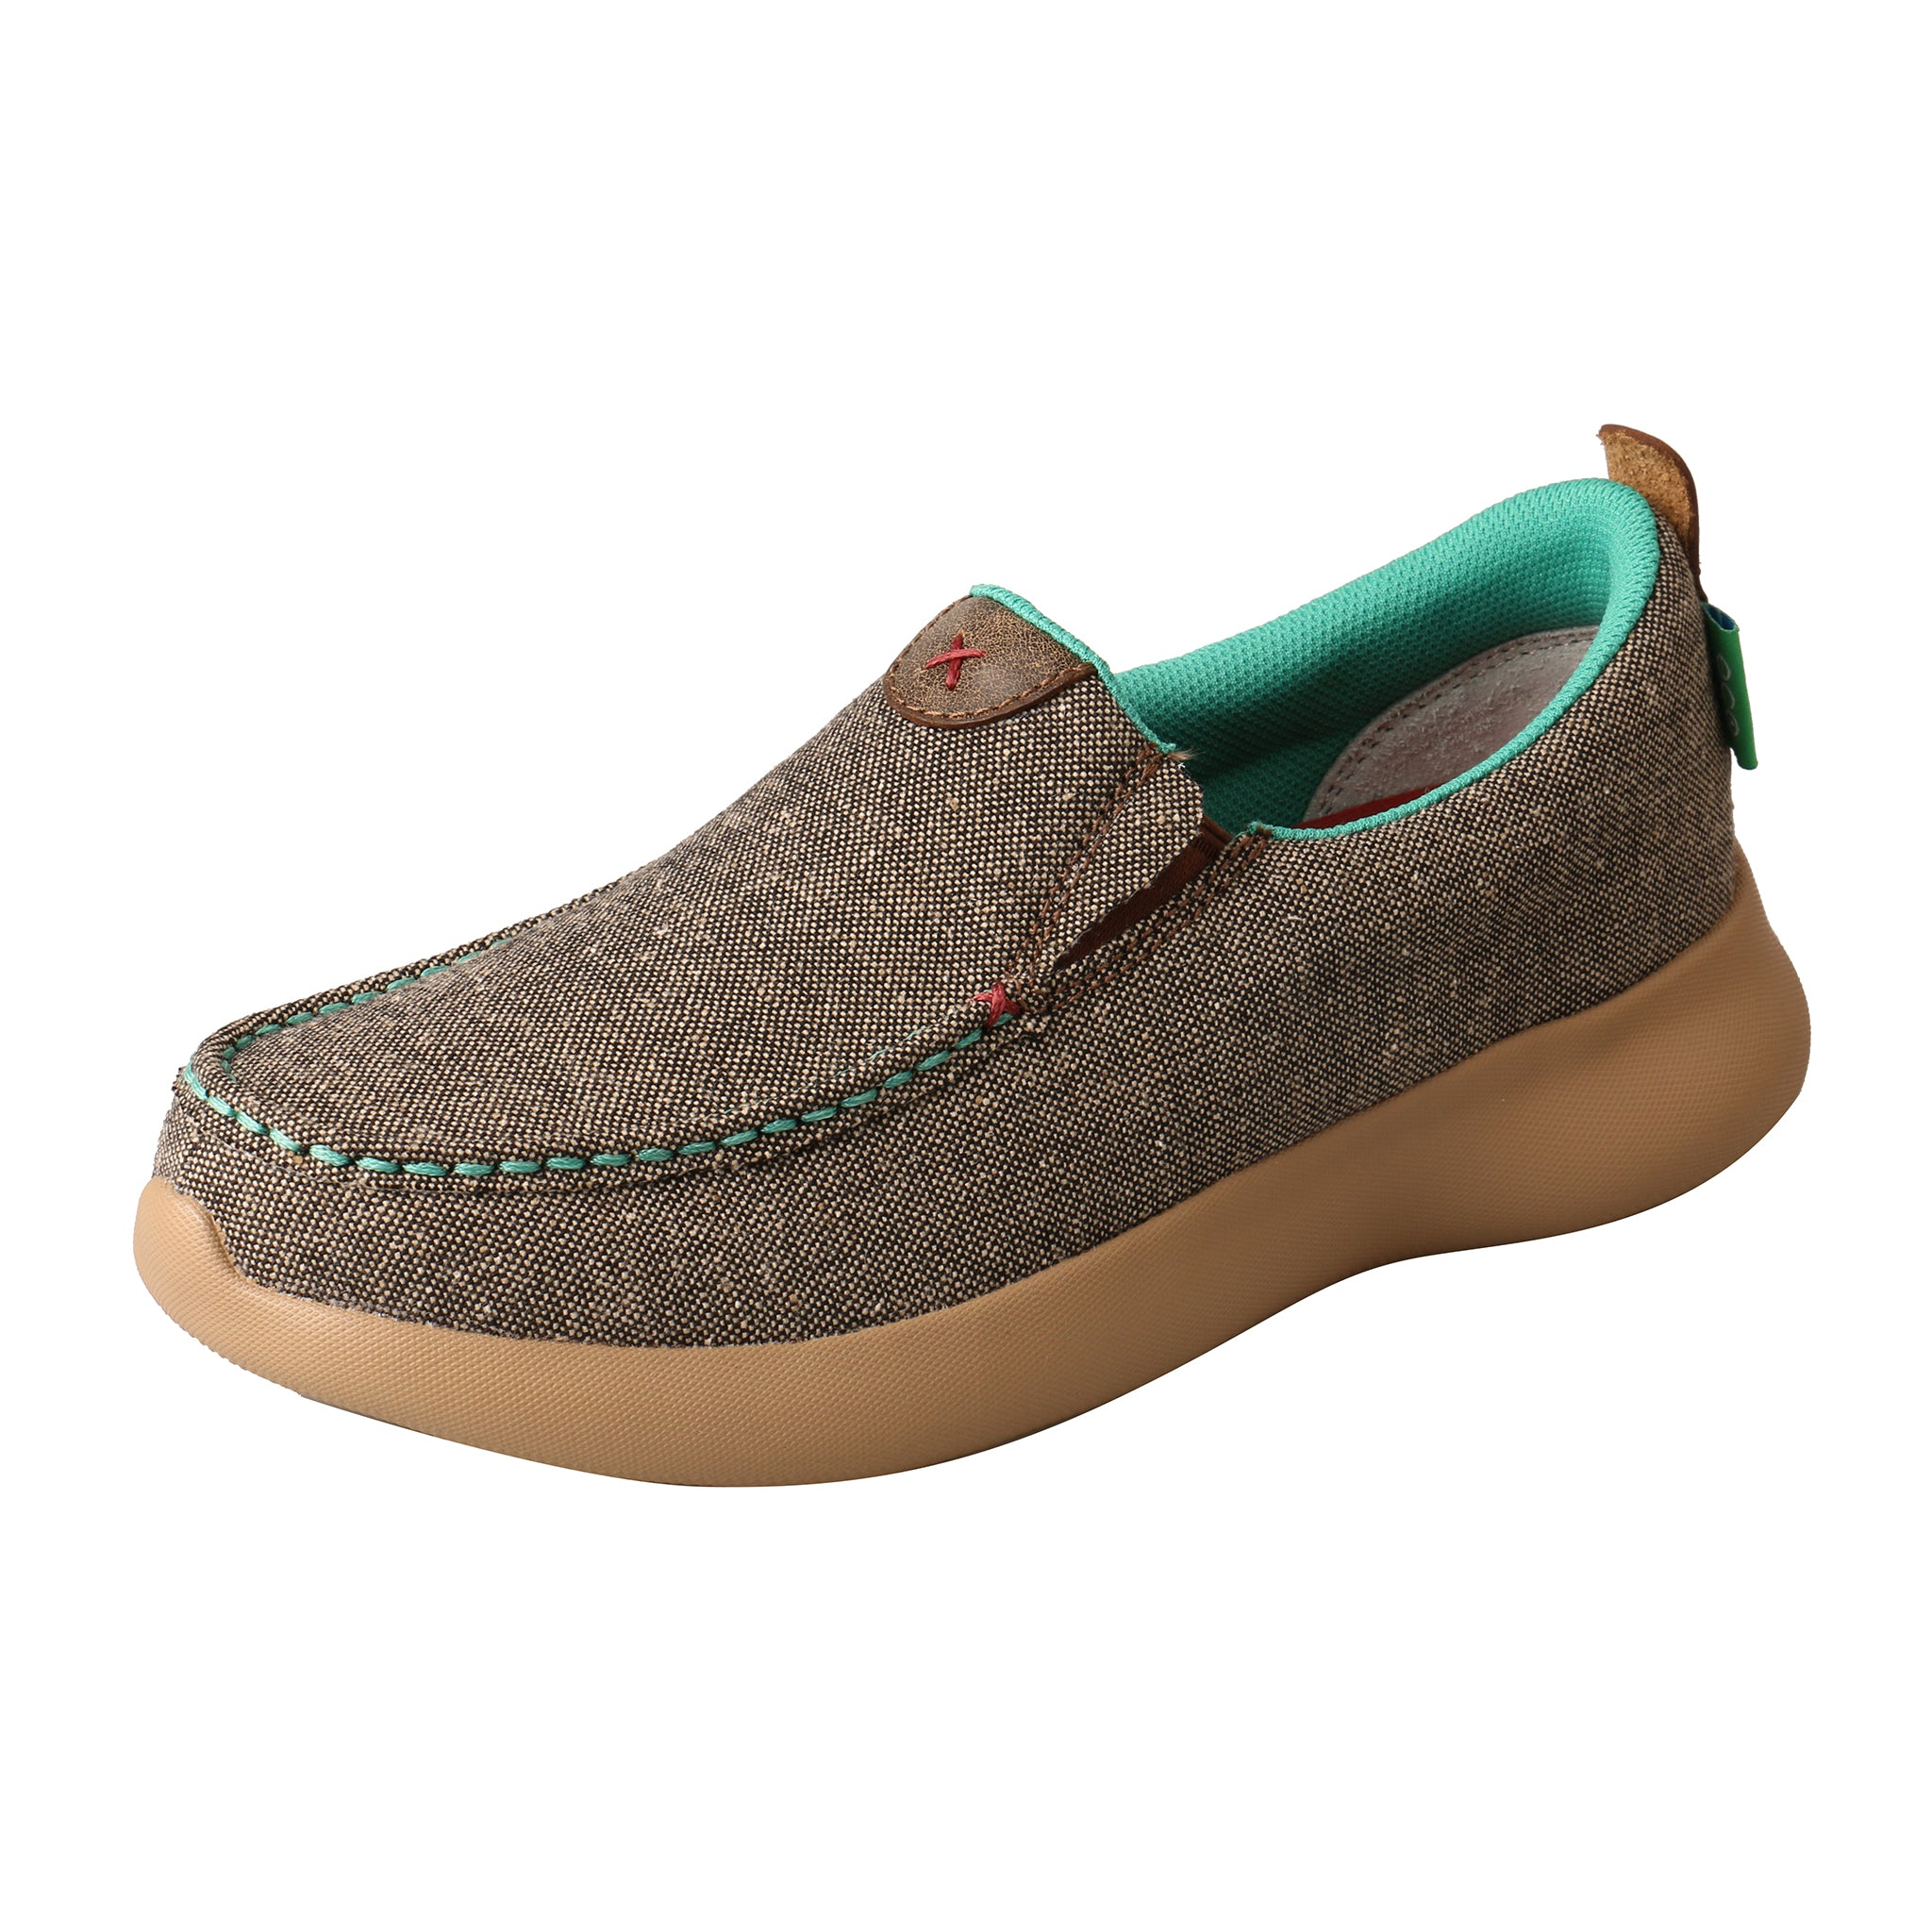 WRV0001 - Twisted X Reva 12 Slip-On - Dust